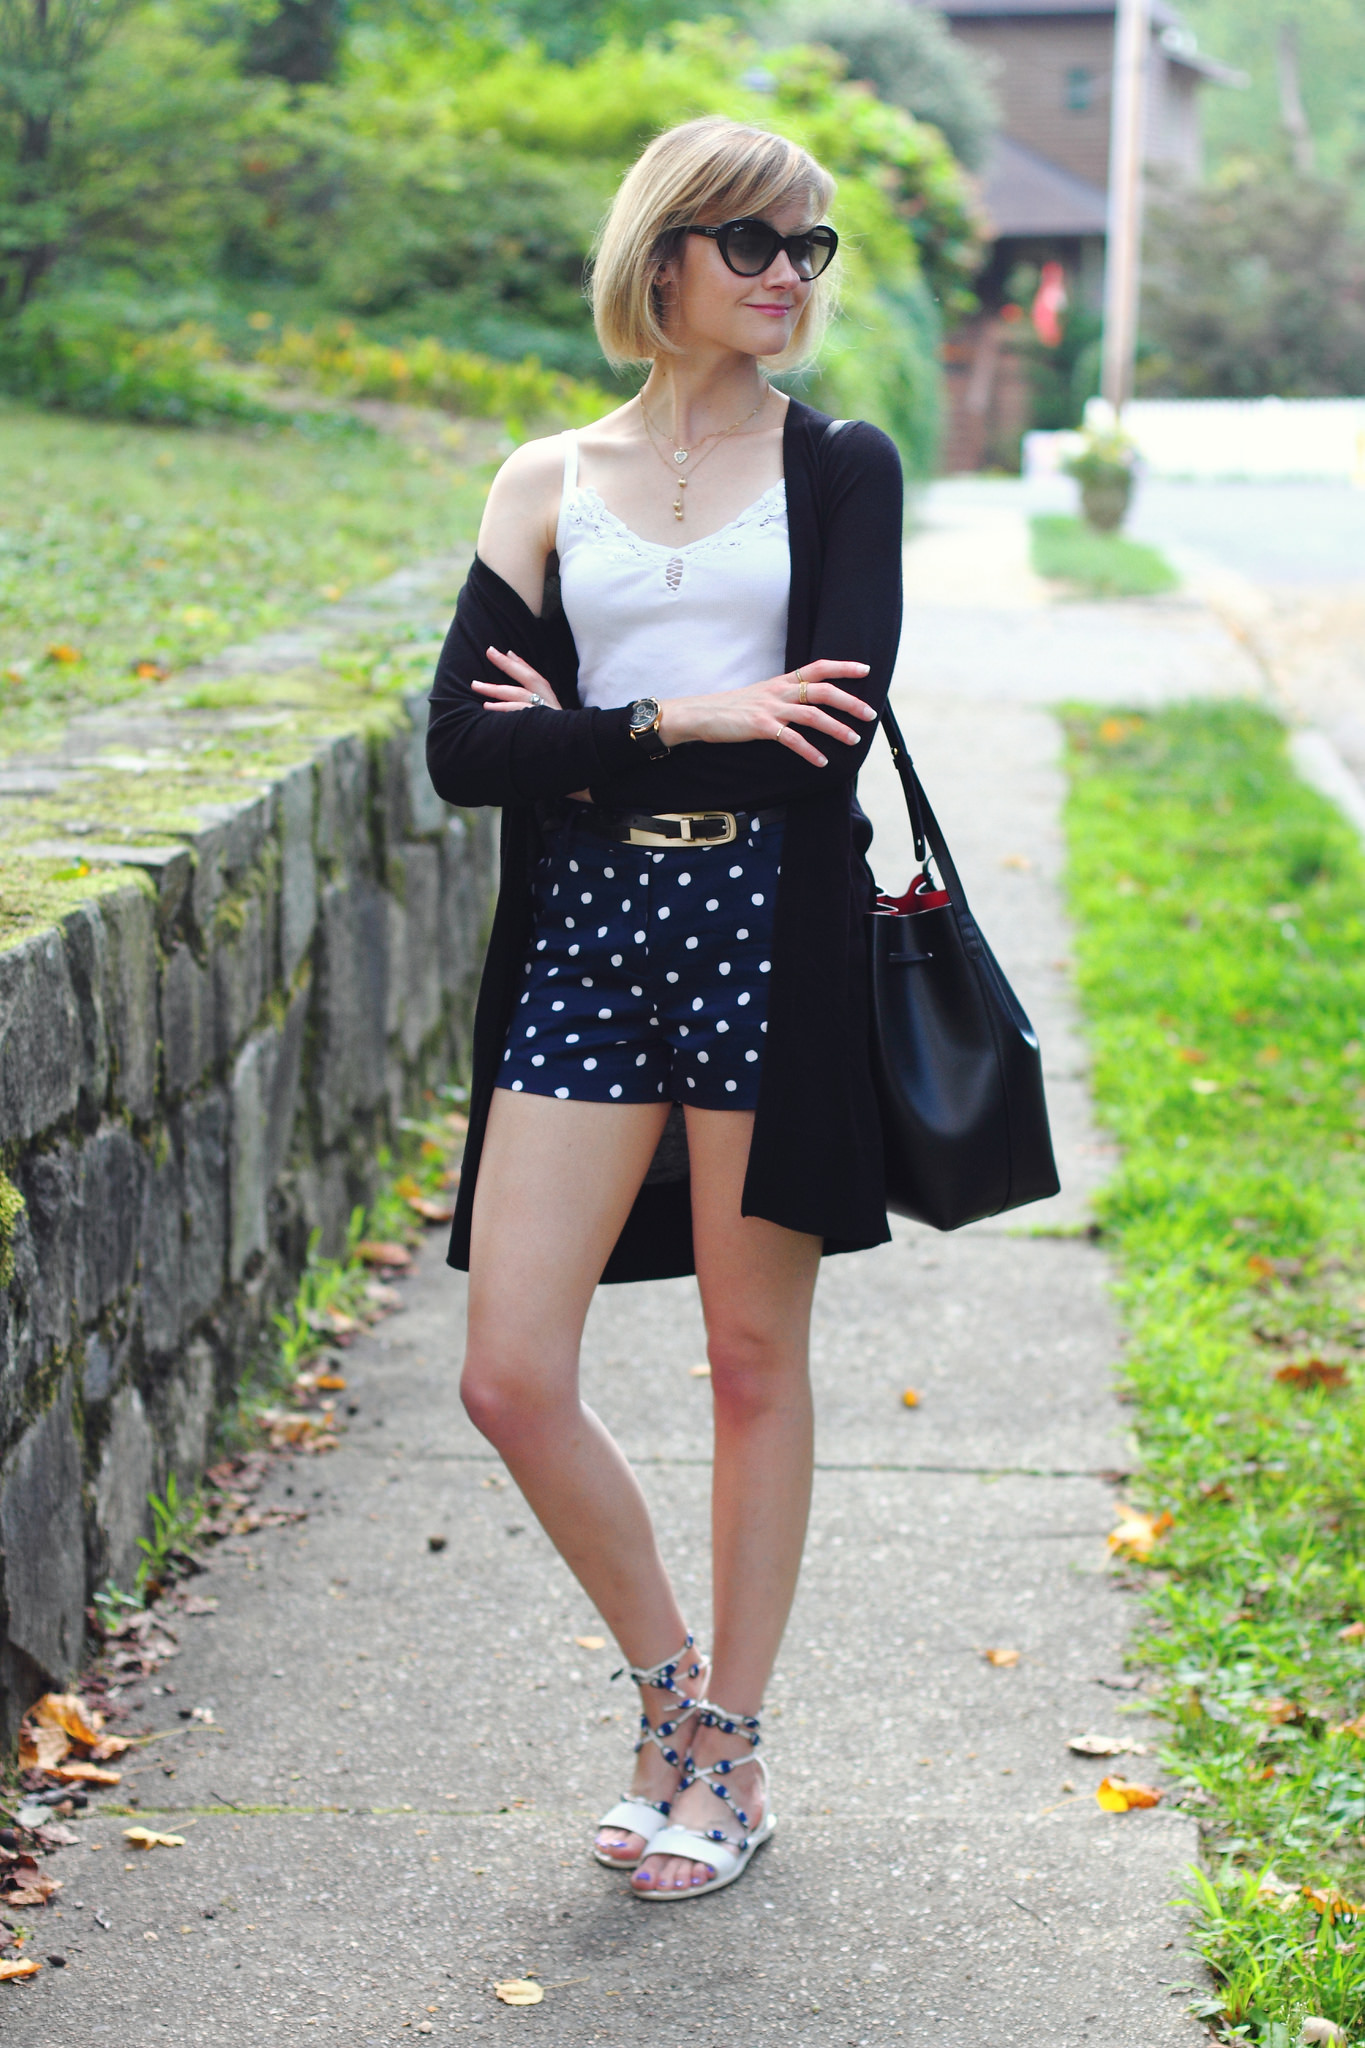 Oasis polka dot shorts and Loeffler Randall sandals